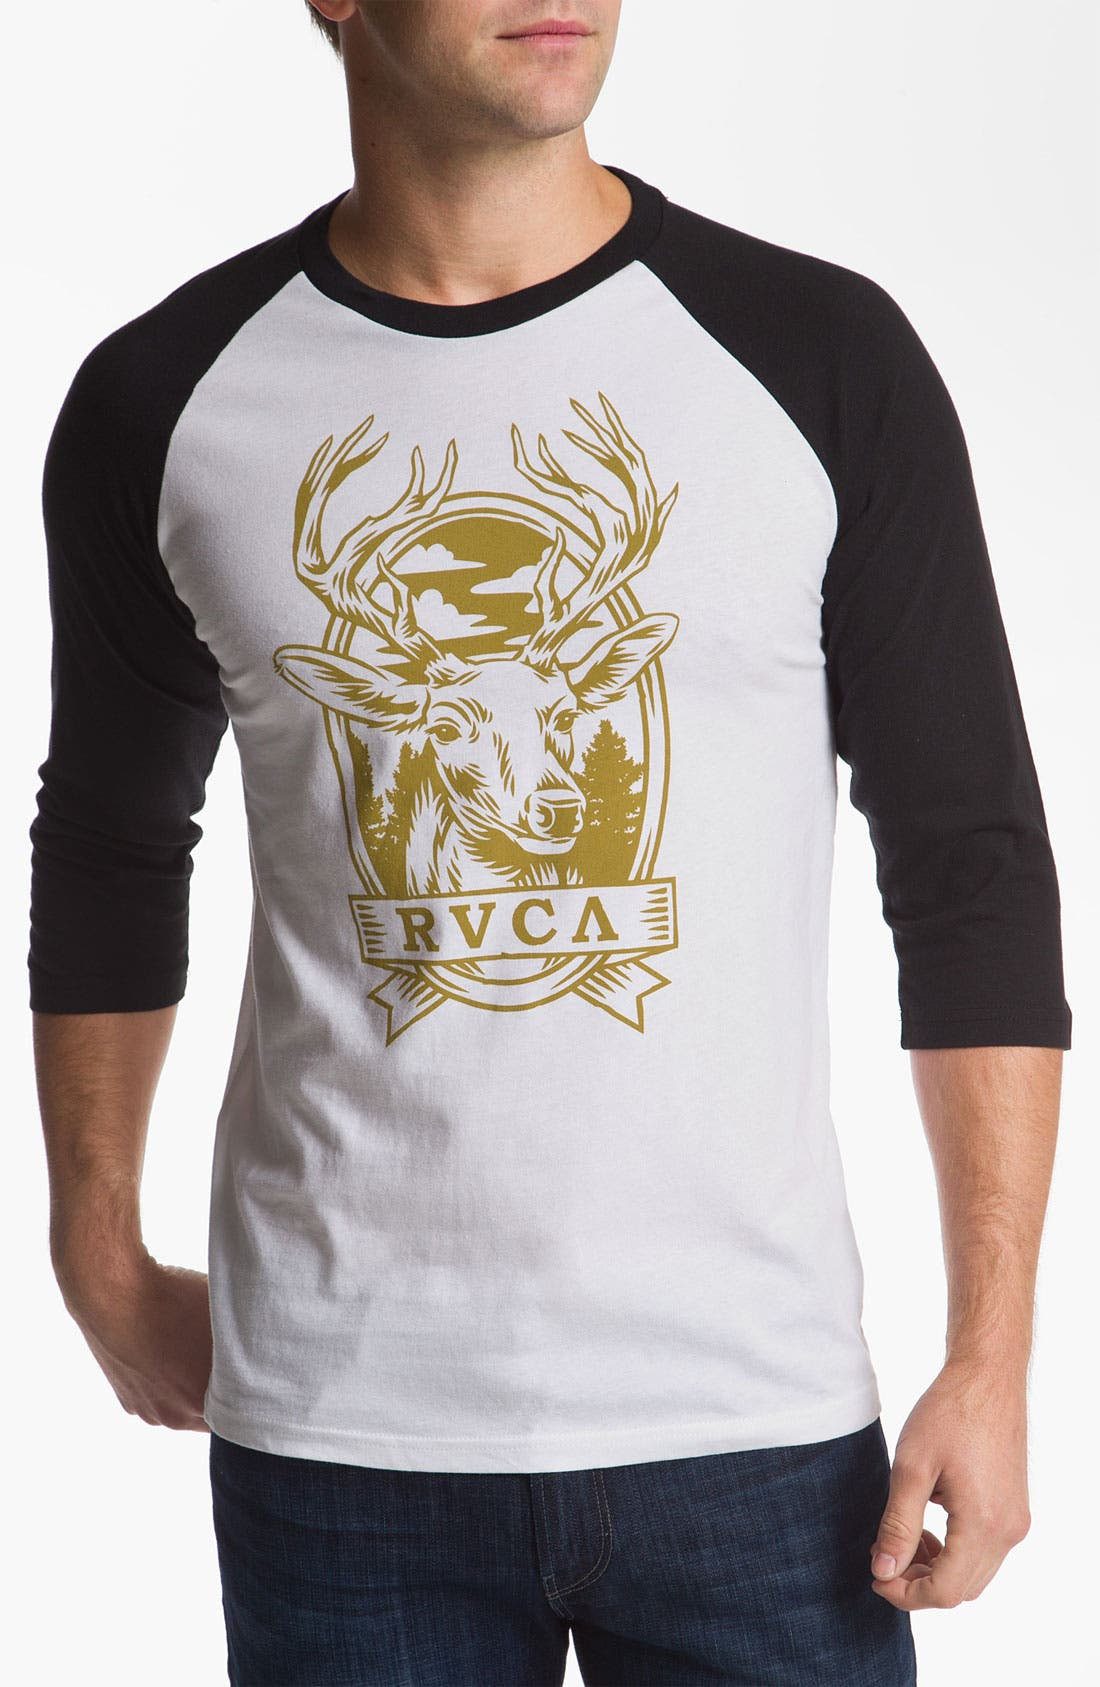 Alternate Image 1 Selected - RVCA 'Deer Hand' Raglan T-Shirt